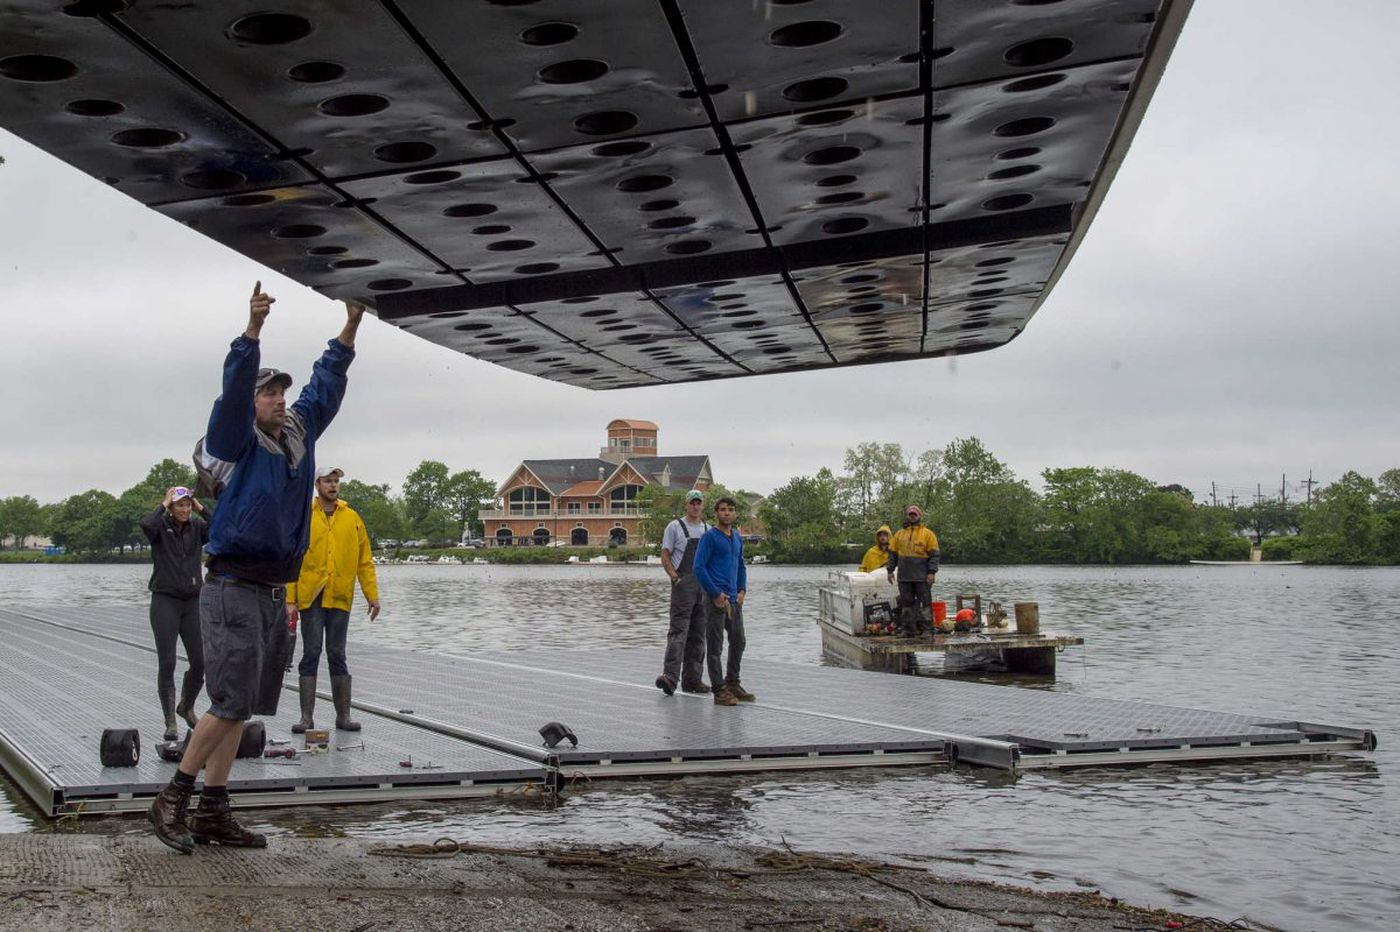 'Unprecedented,' organizers say of last-minute switch of Stotesbury Cup Regatta from Philly's Schuylkill to S. Jersey's Cooper River